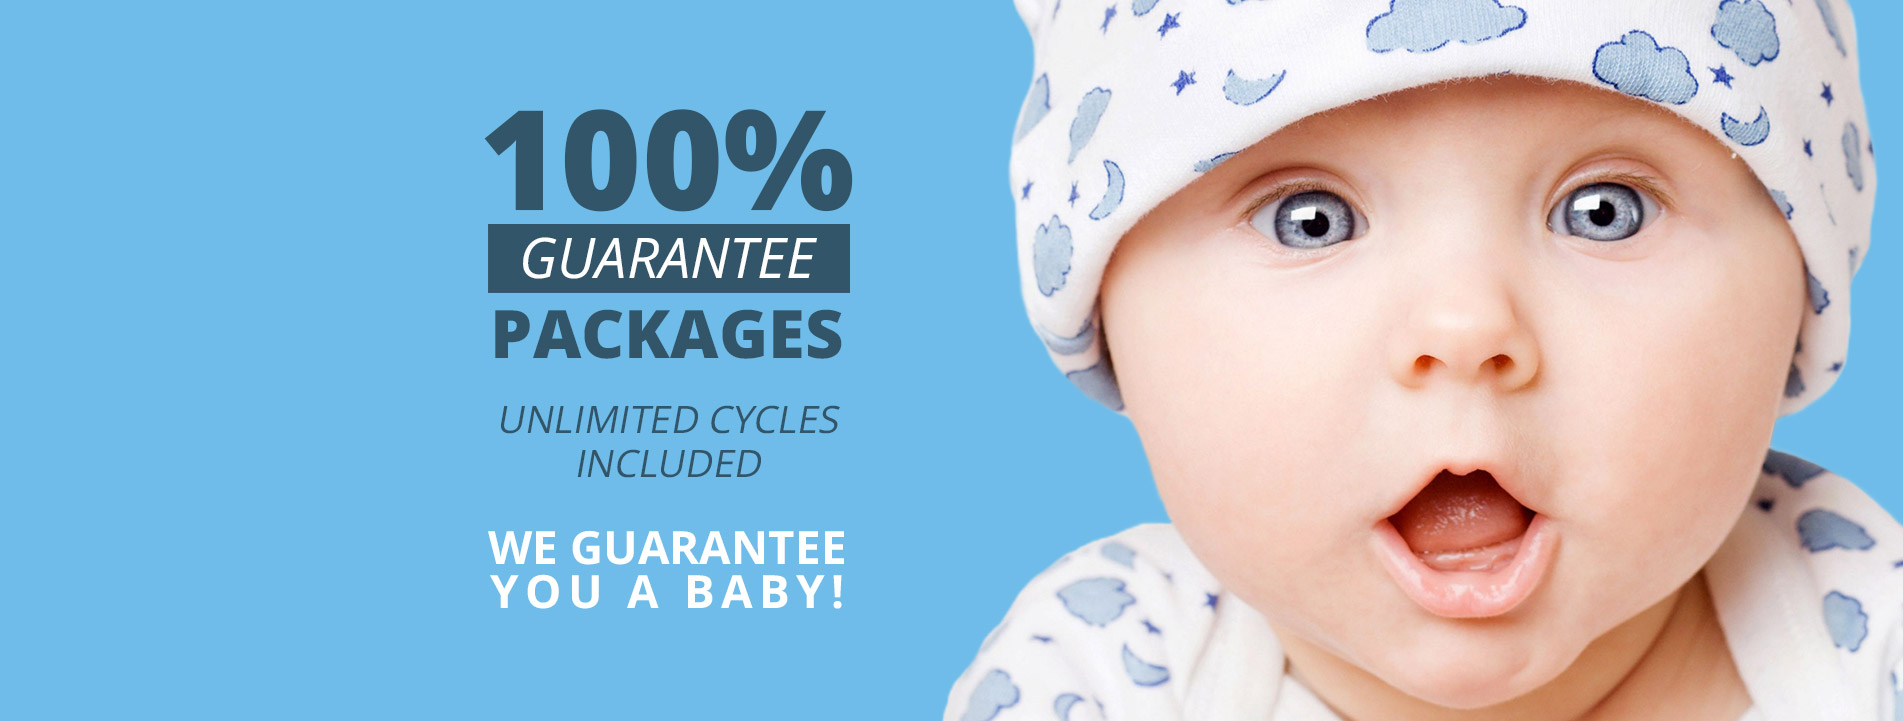 Perfect Surrogacy 100% Guarantee